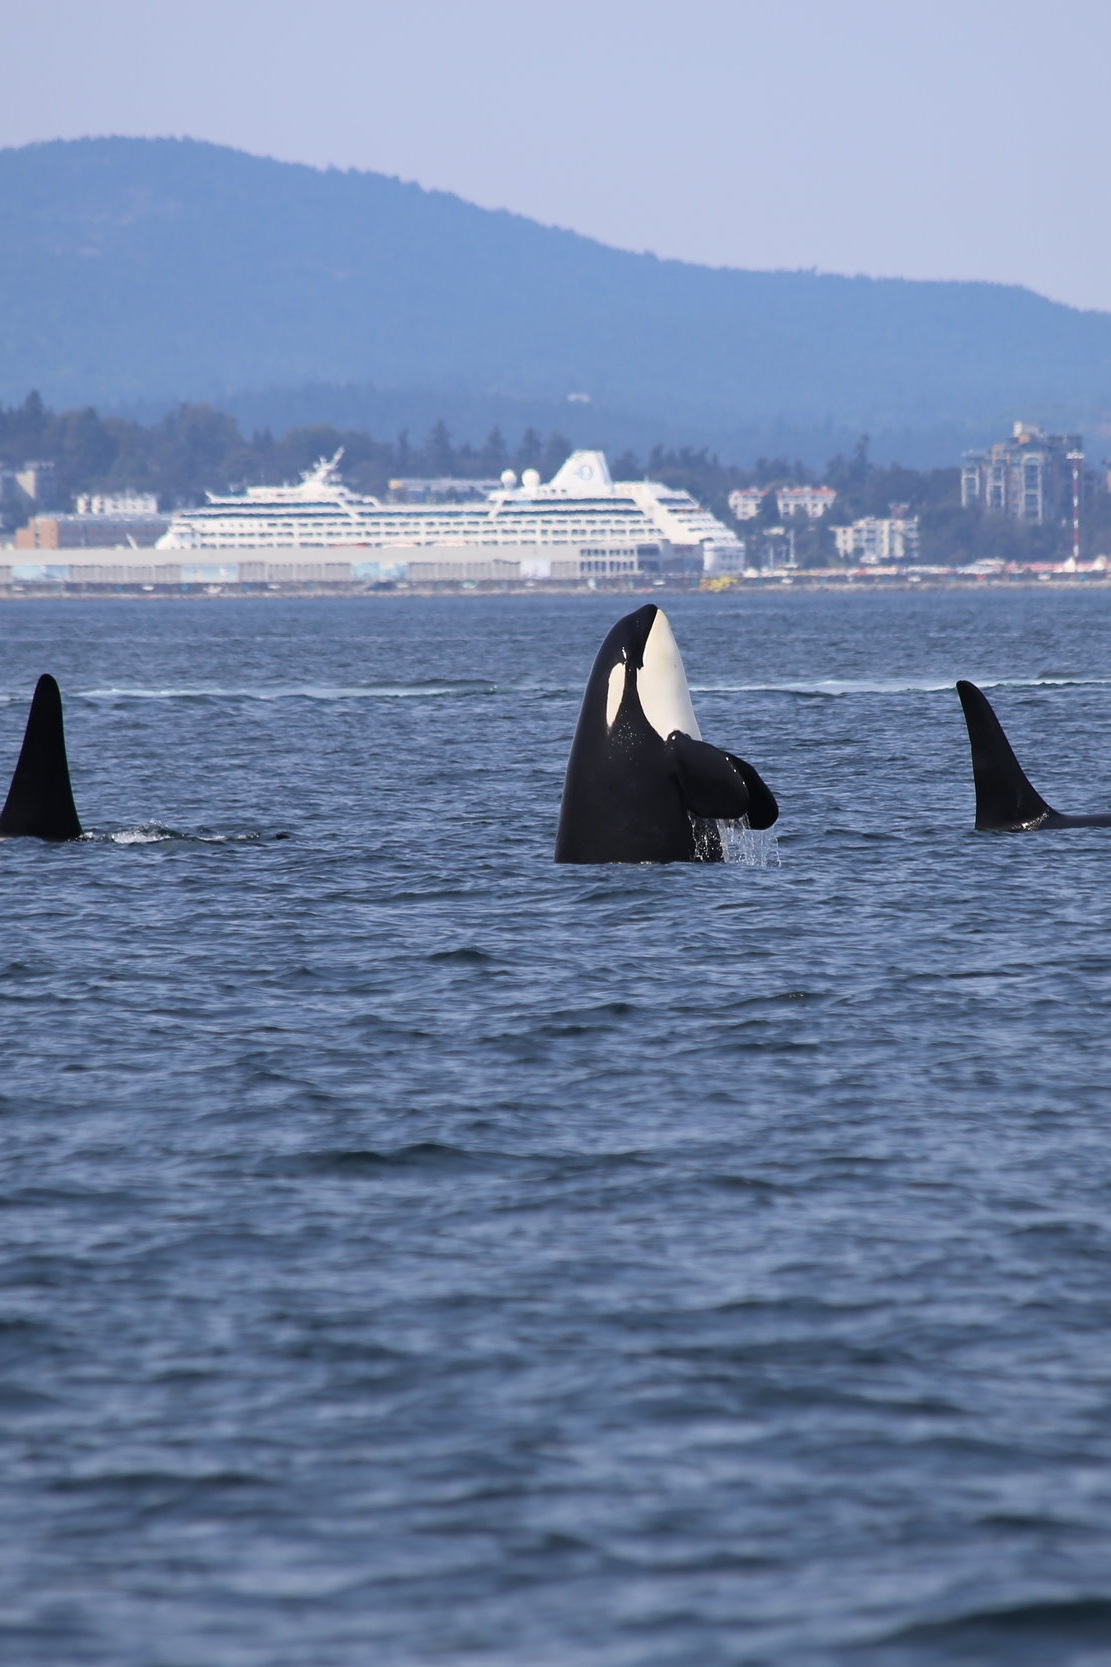 - TAKE A WHALE WATCHING CRUISE